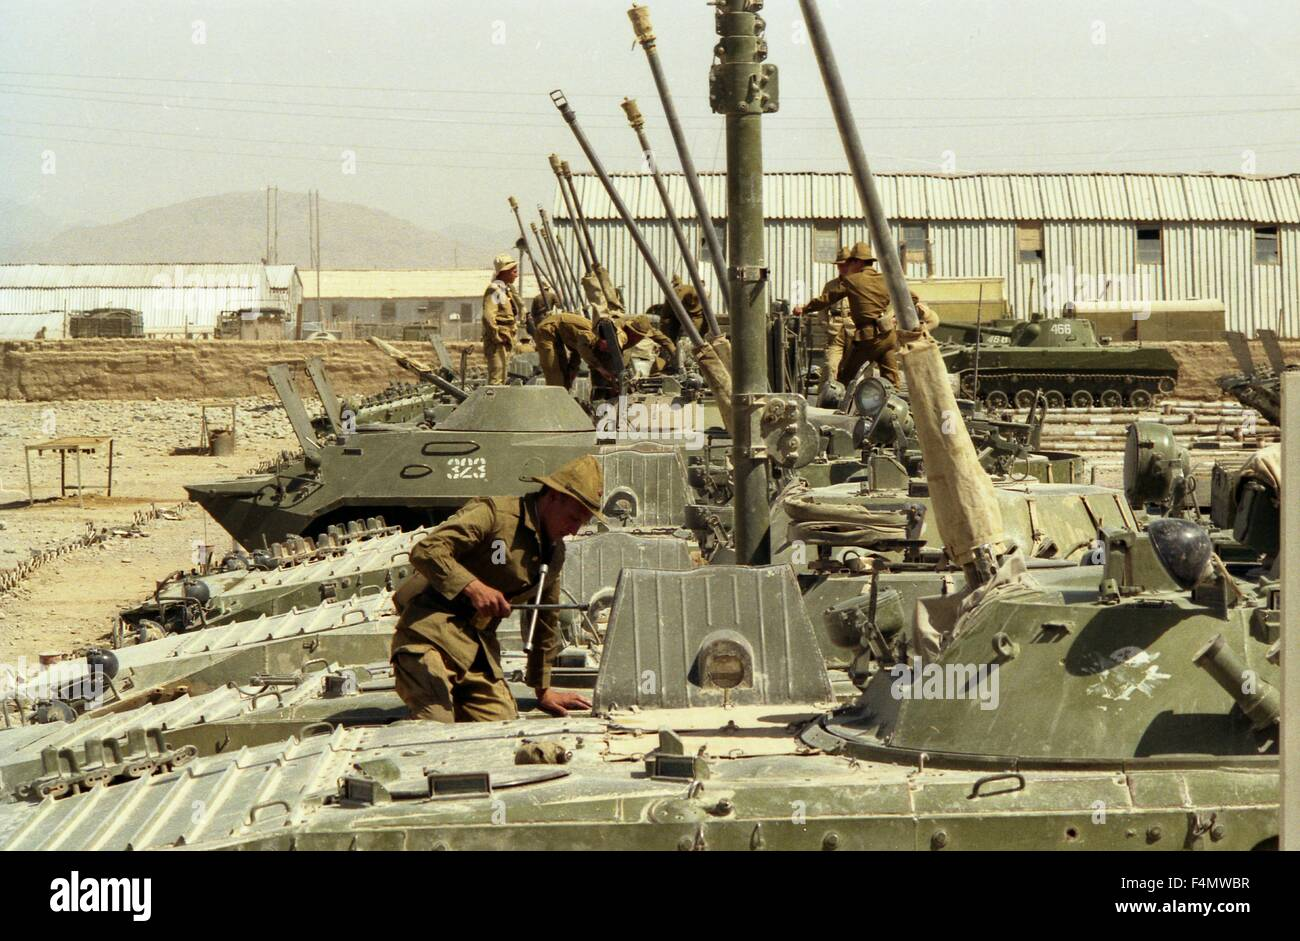 Soviet Afghanistan war - Page 6 Afghanistan-the-soviet-soldiers-repair-military-technics-F4MWBR